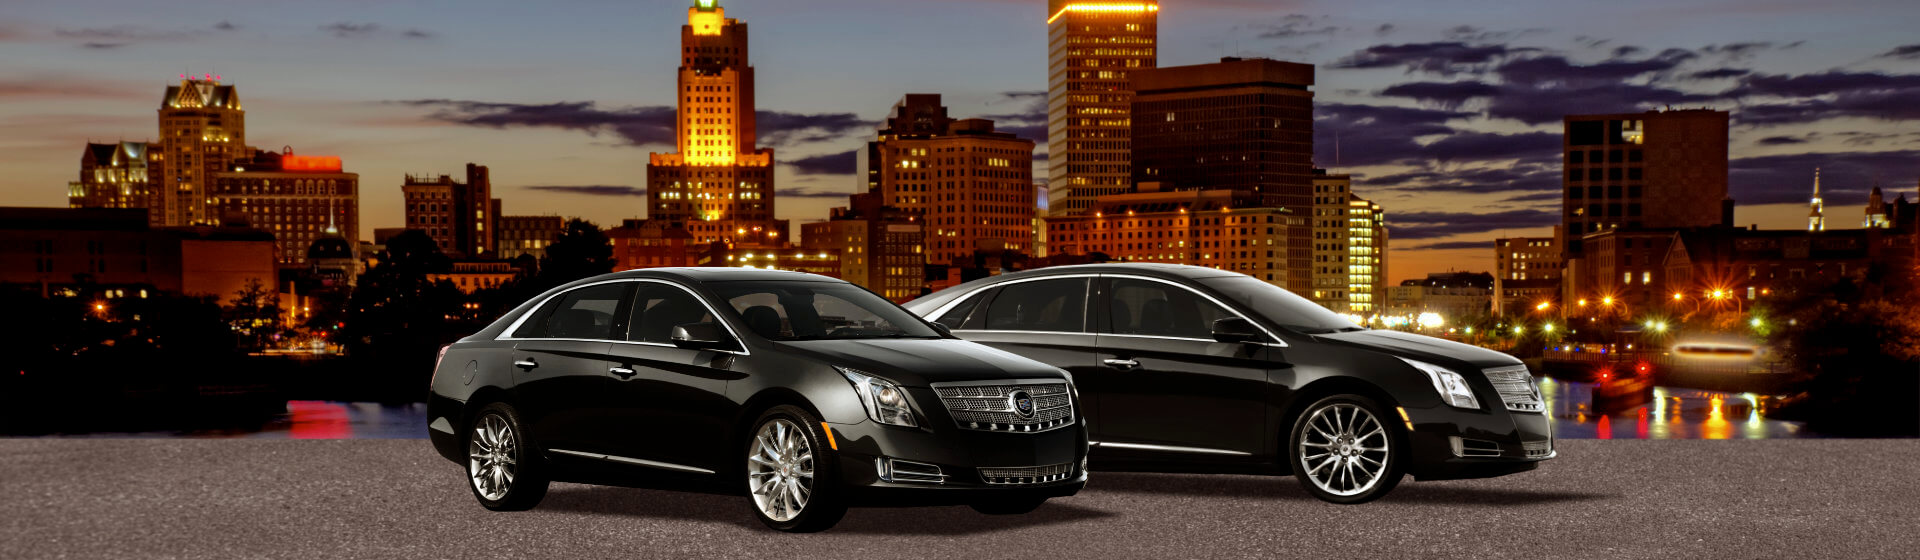 Boston to Providence Town Car and Limousine Services